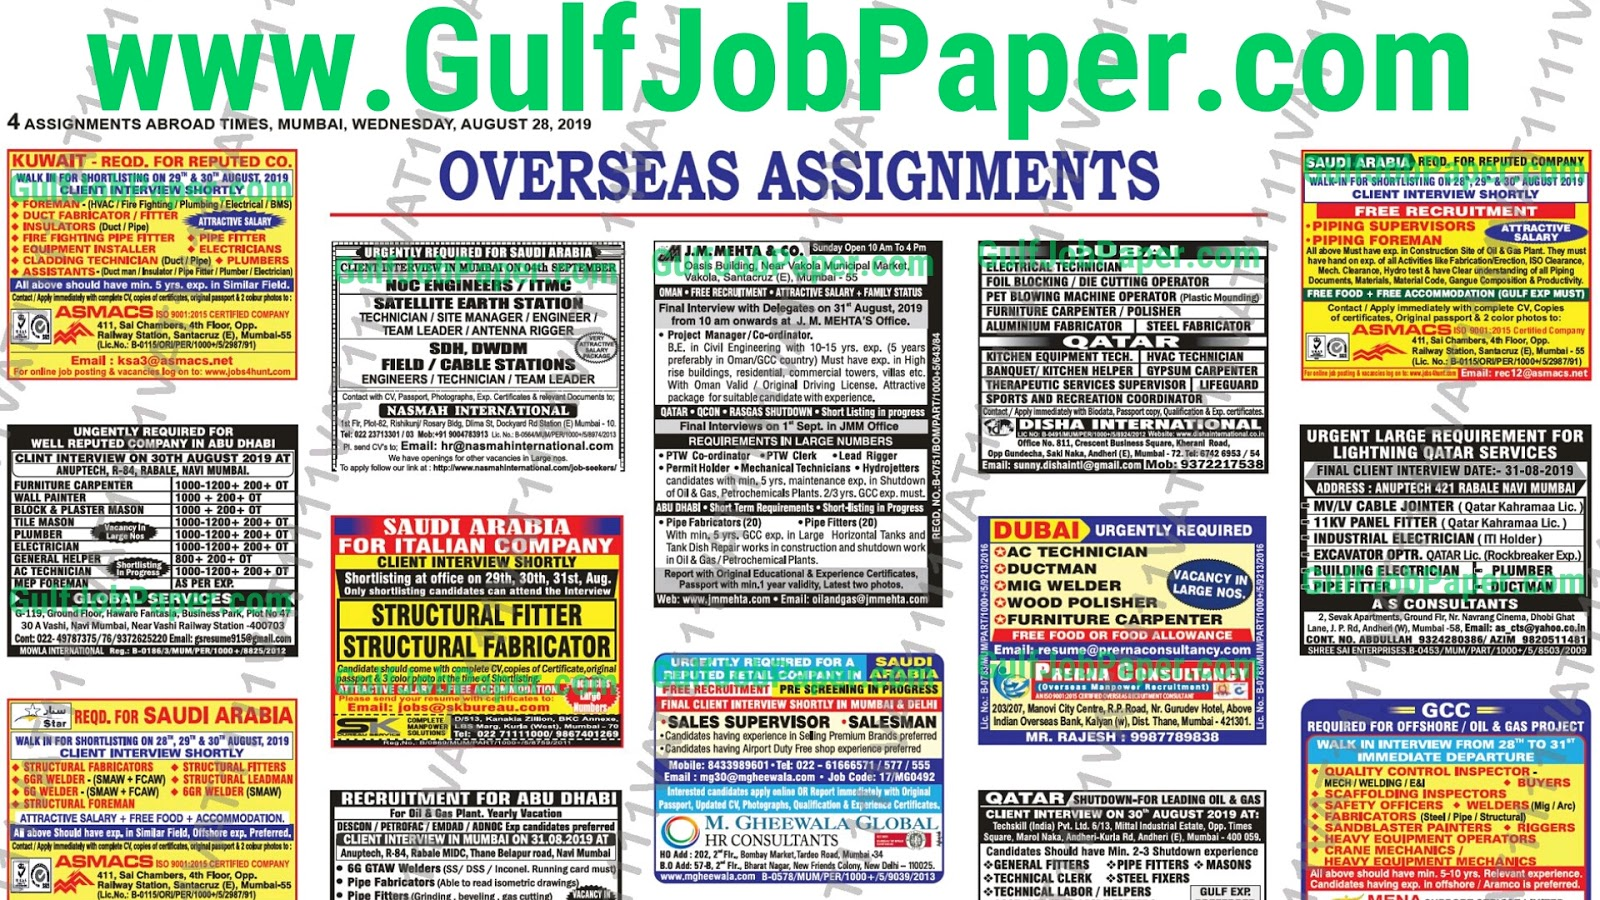 Assignment Abroad Times 14th August 2019